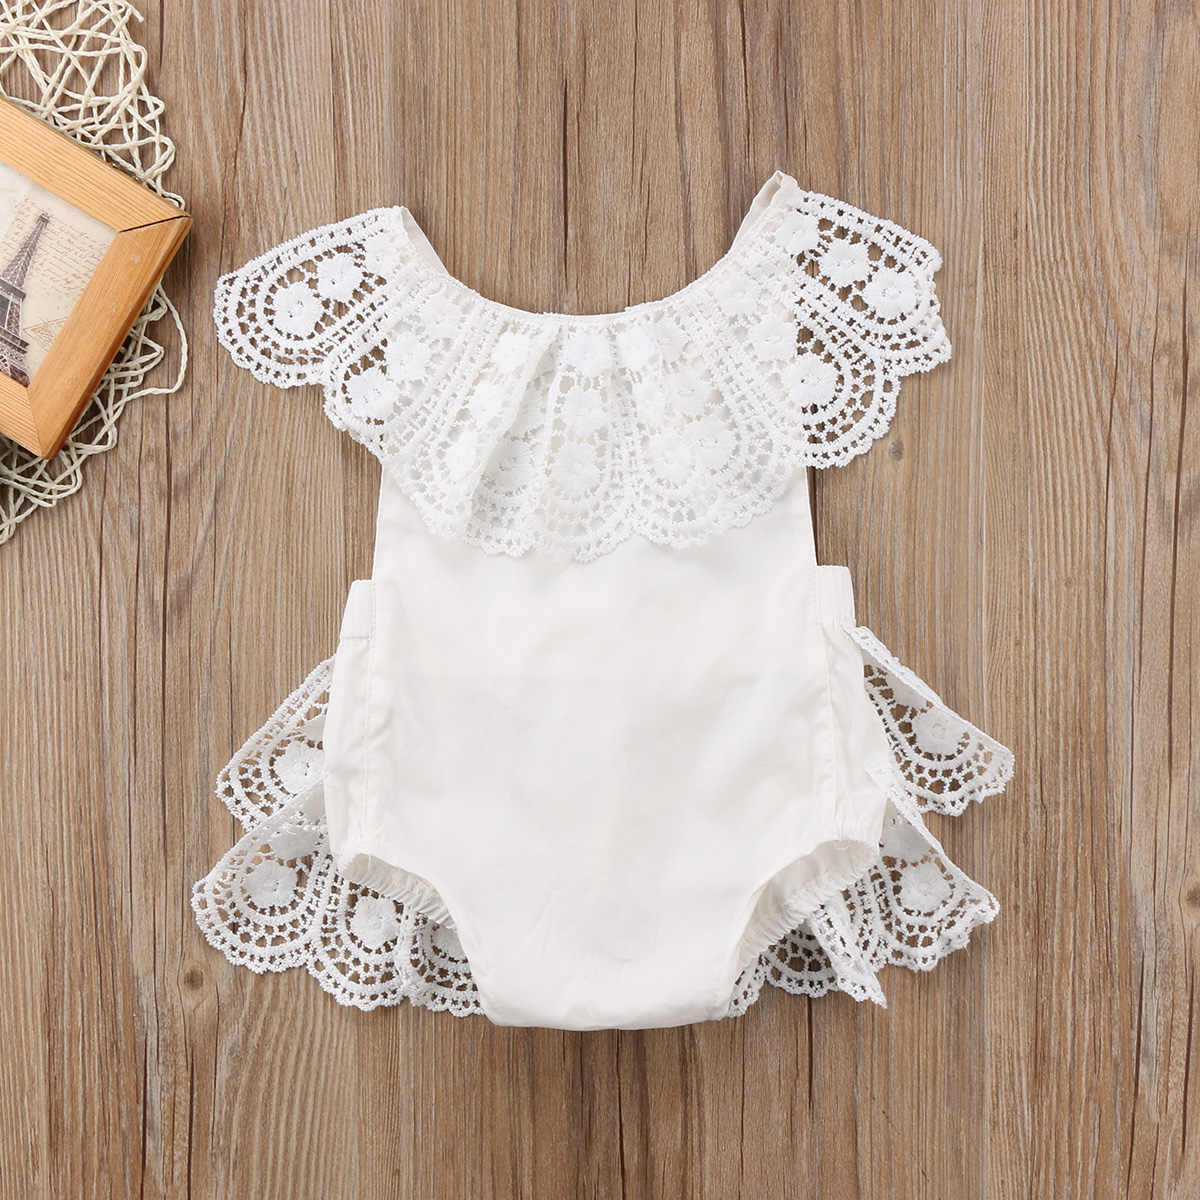 46a3abd28db2 0-24M Newborn Toddler Baby Girl Princess Lace Romper Easter Costume for  baby girl 2018